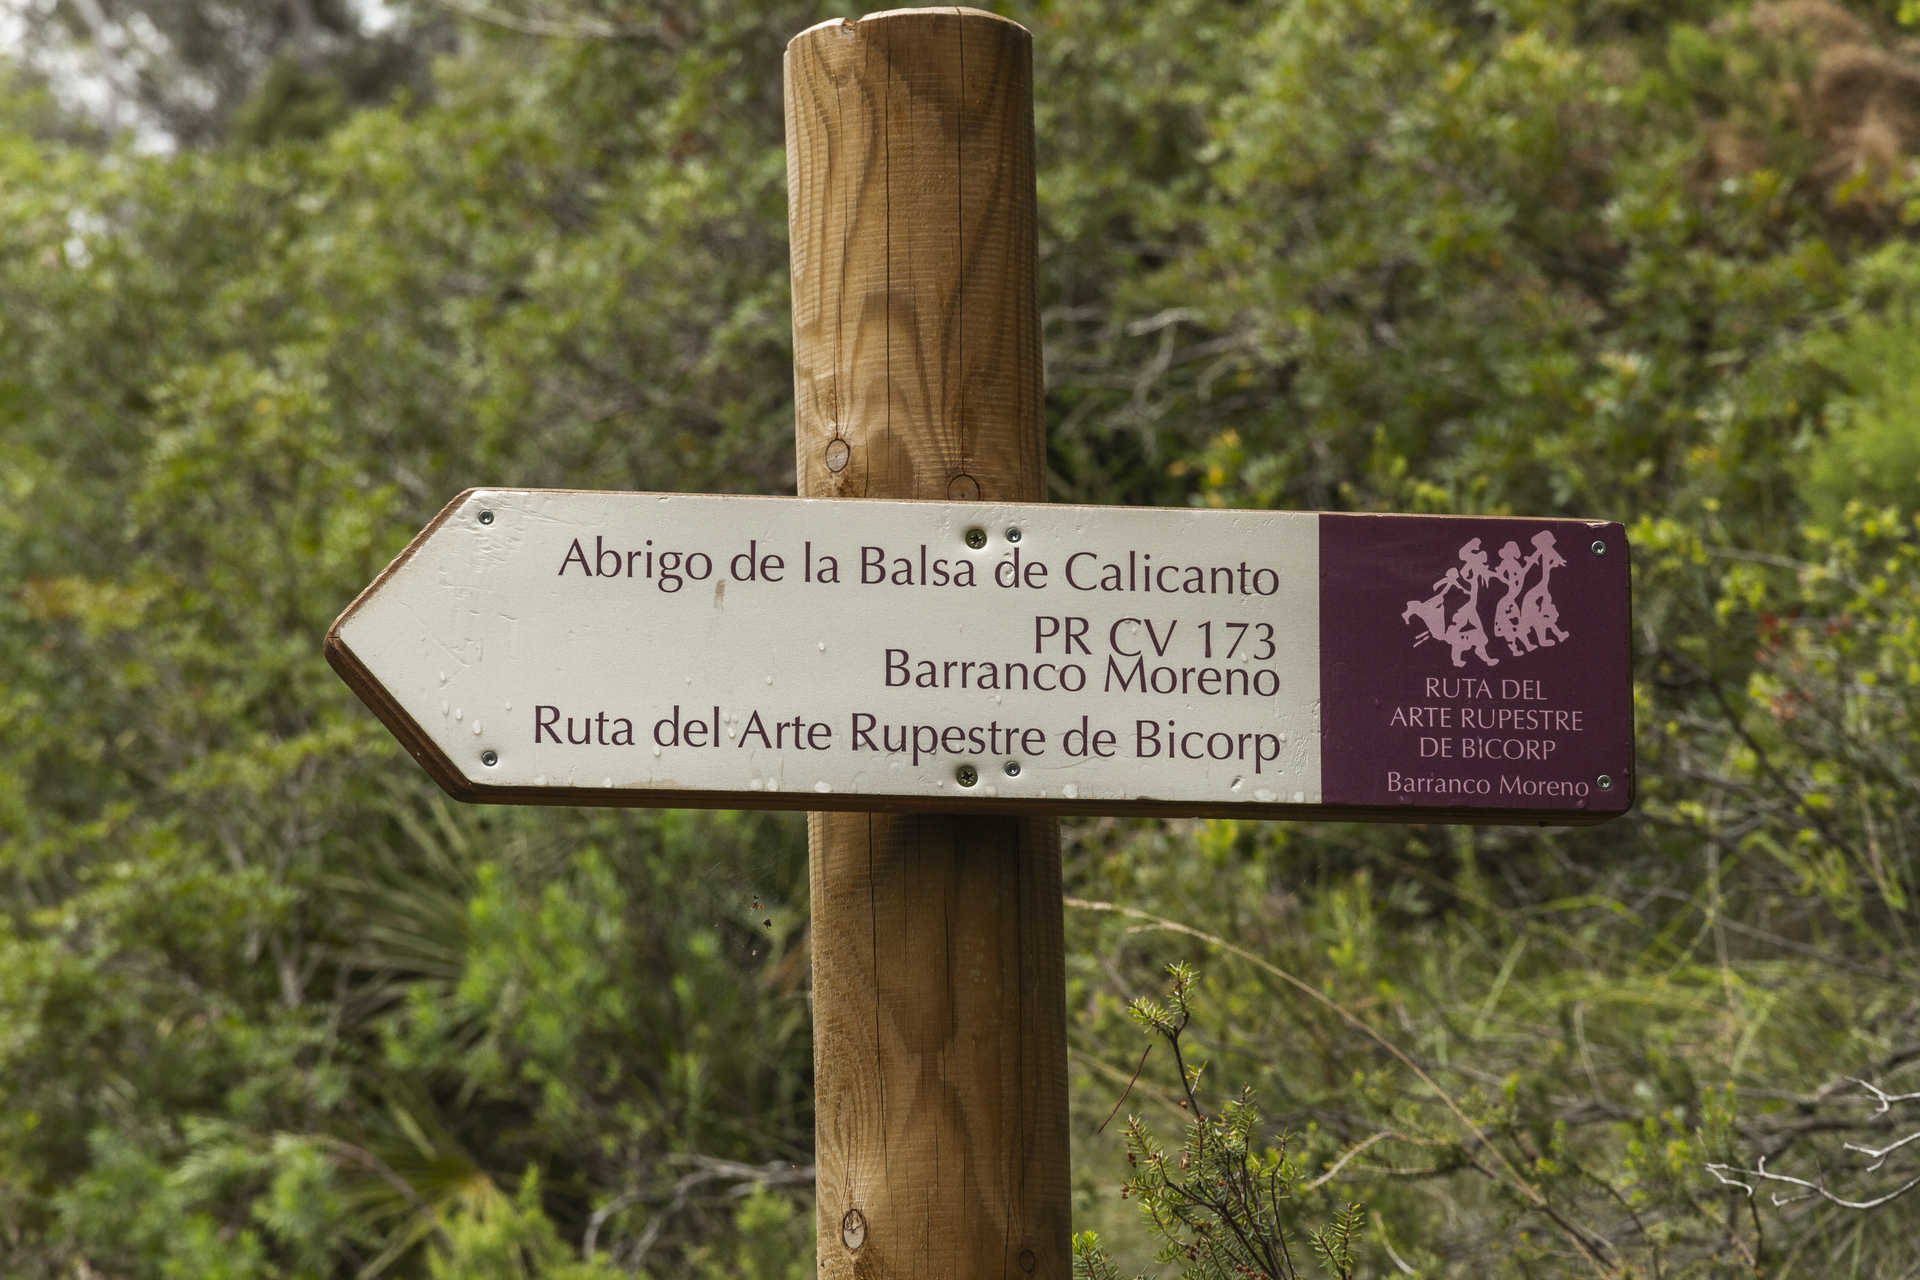 Barranco Moreno